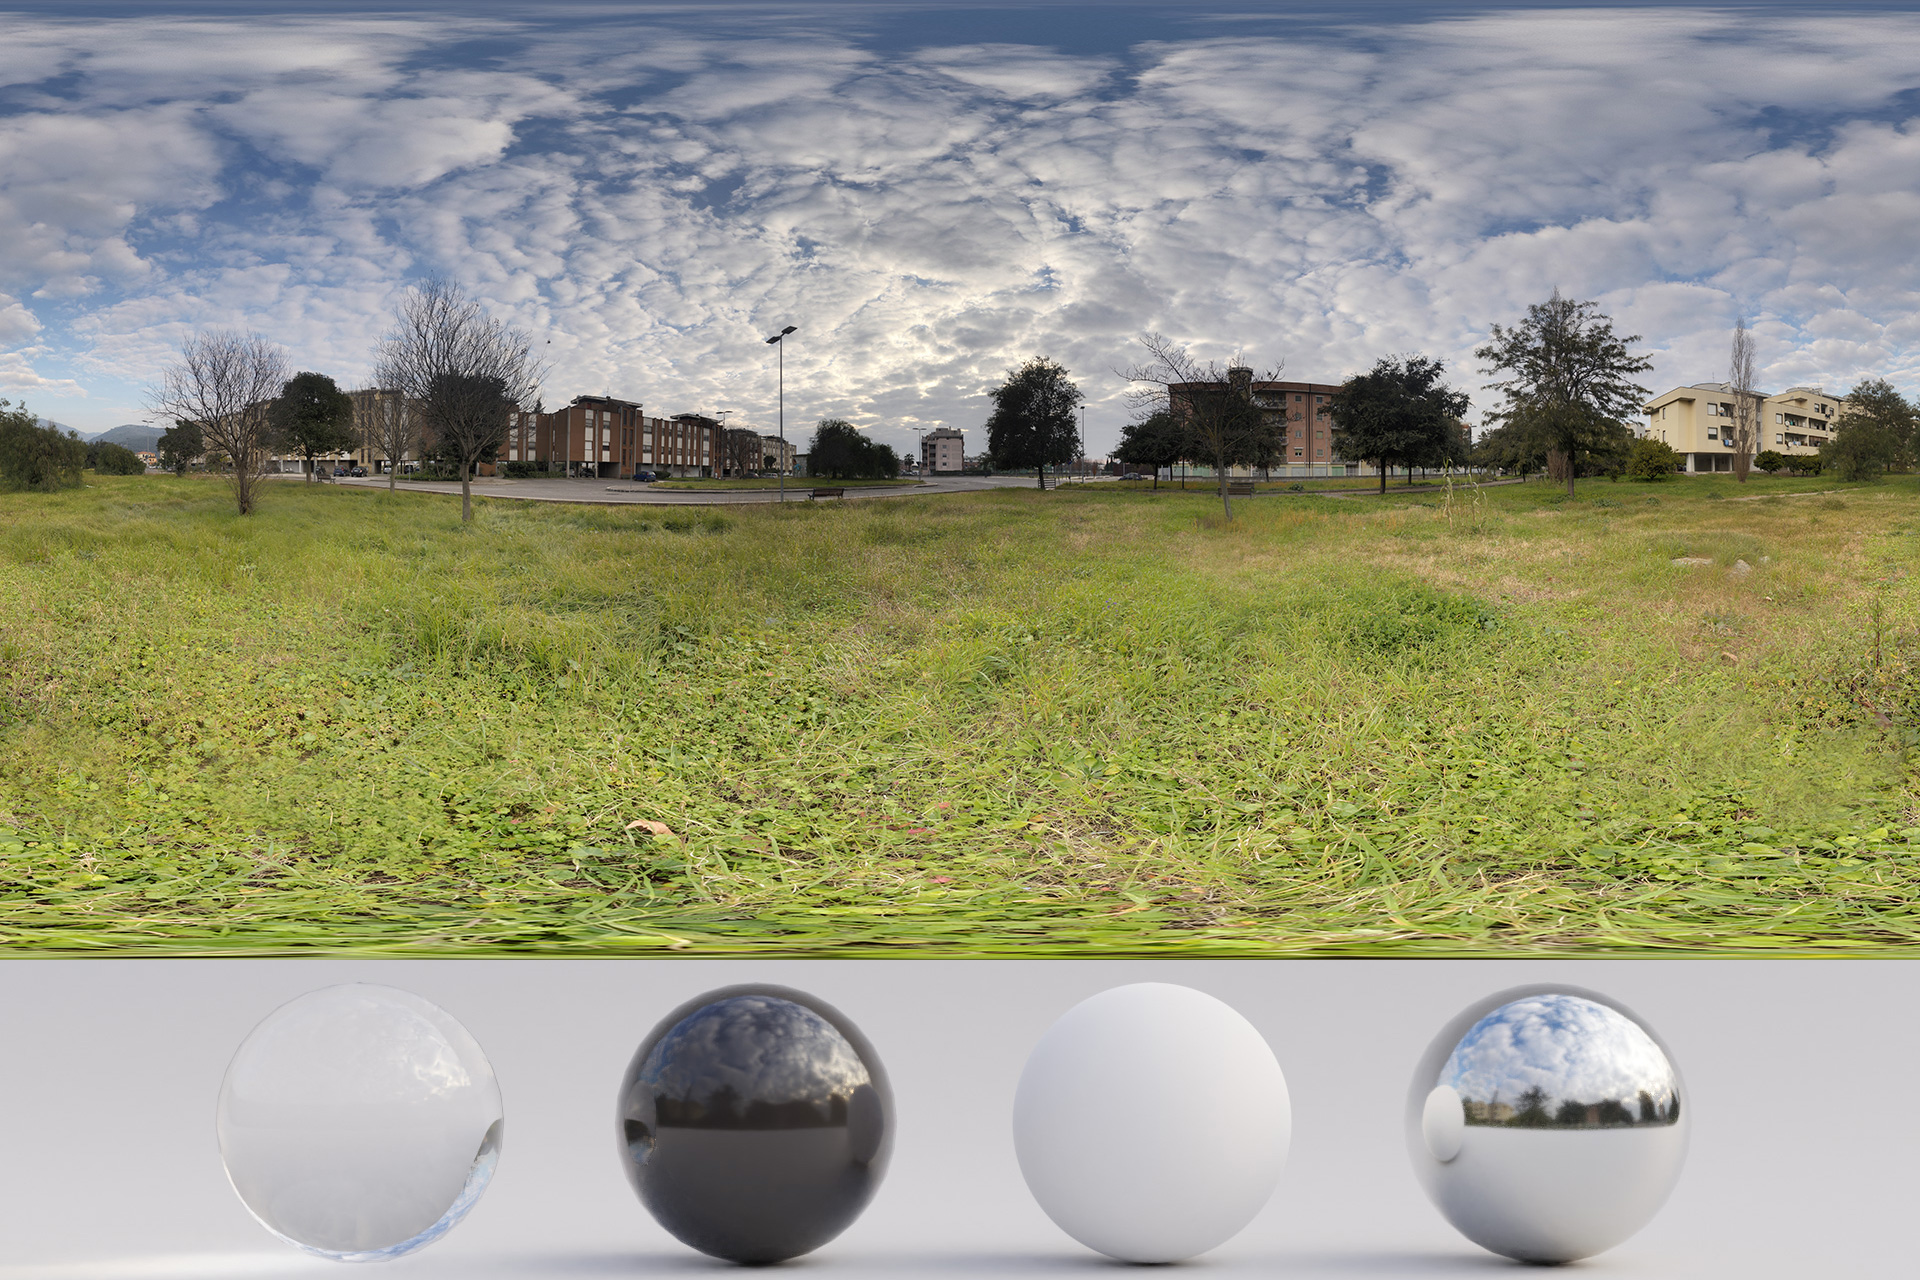 HDRi – Buildings, Grass and Clouds